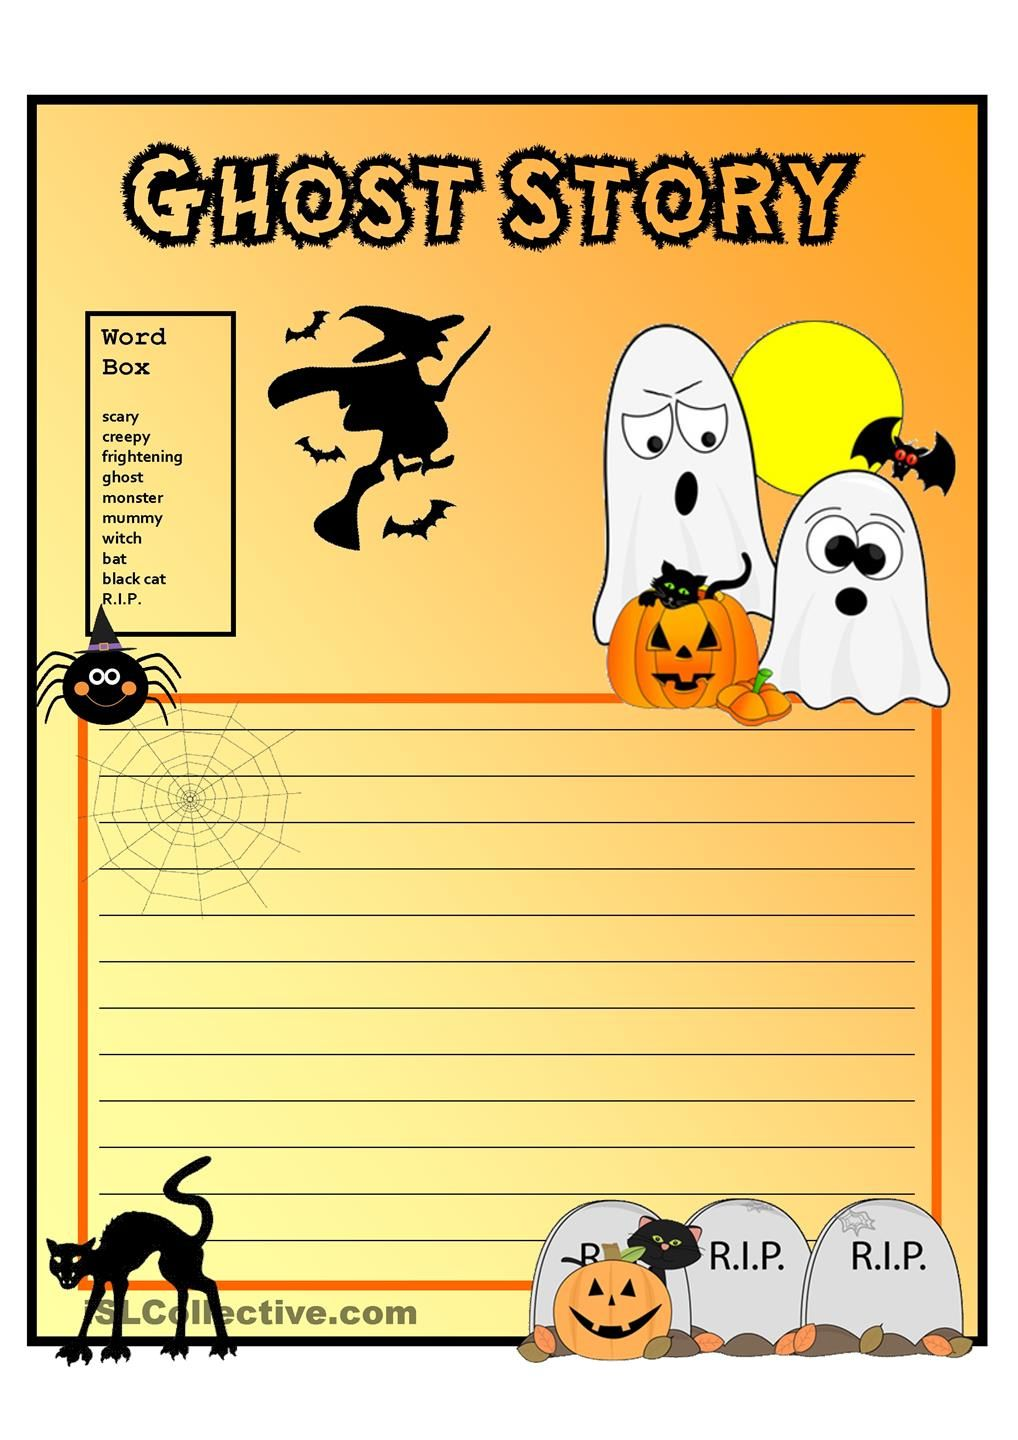 creative writing ghost story form vocabulary grade 3 write a scary halloween story vocabulary suggestions in word box prepare the students by reading ghosts stories to them or by talking about what a ghost